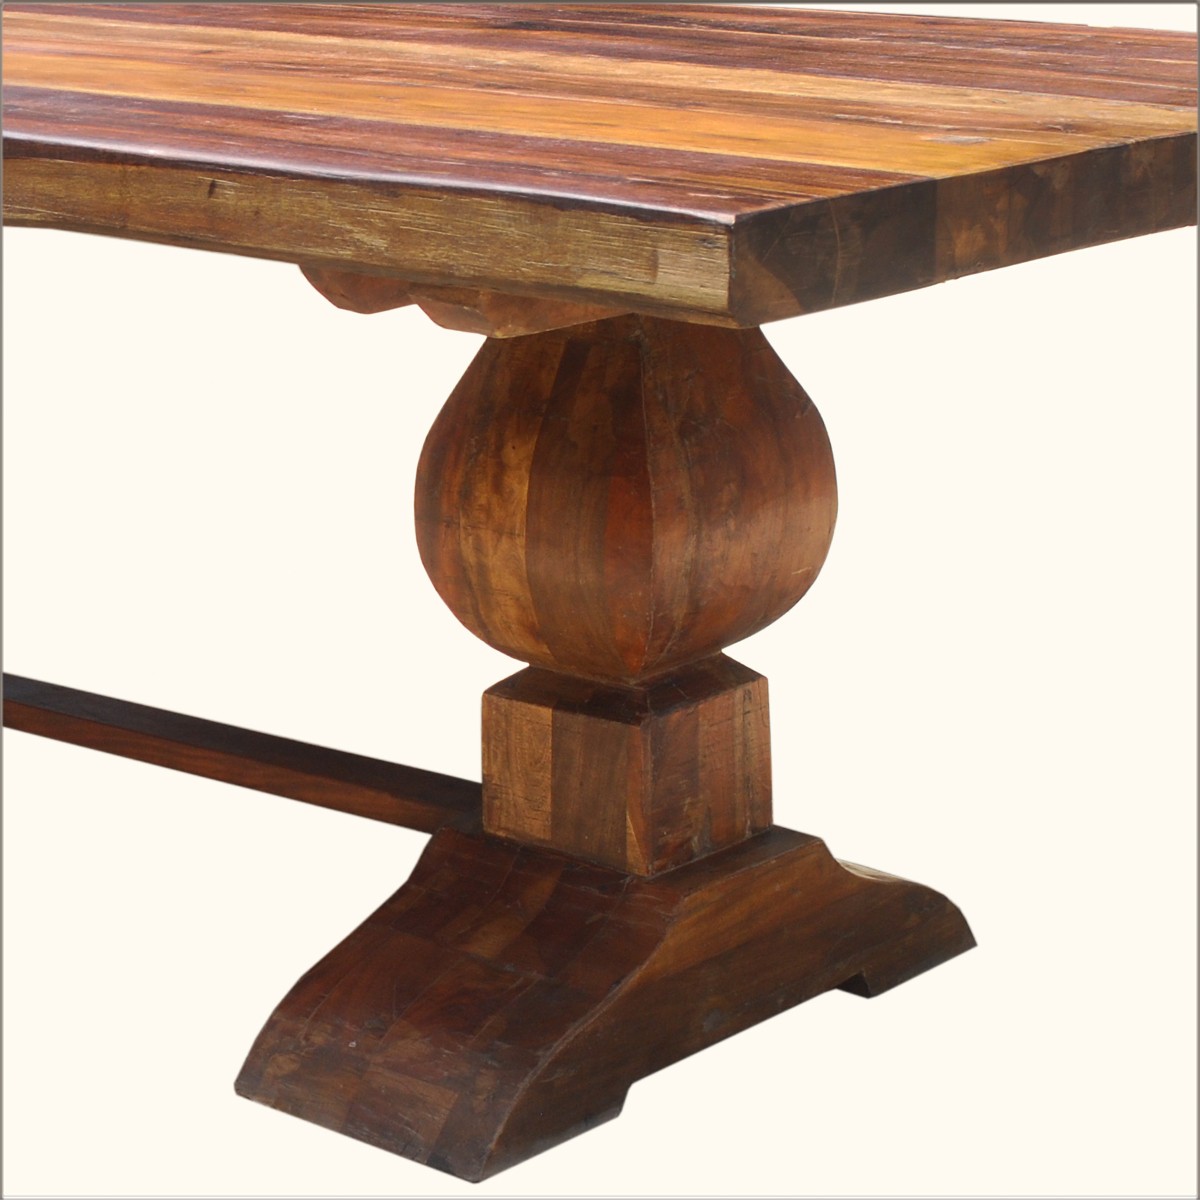 Best ideas about Wood Dining Table . Save or Pin Cool Reclaimed Wood Trestle Dining Table ALL ABOUT HOUSE Now.